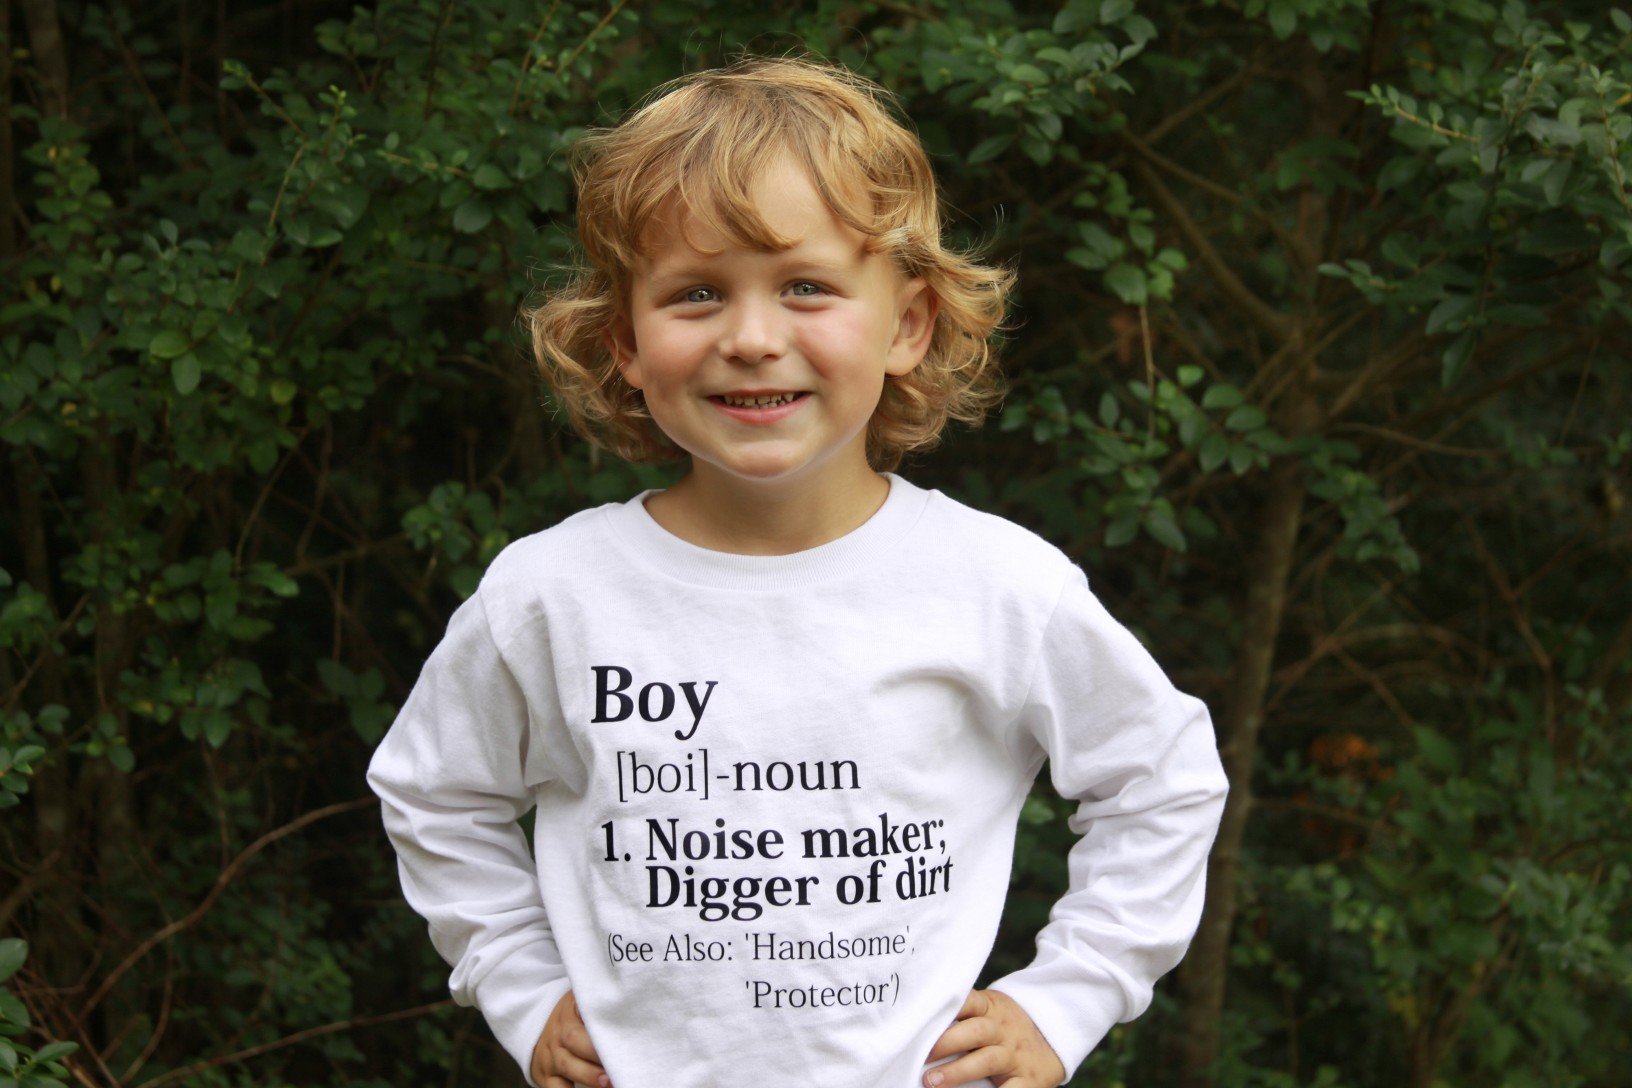 Baby Boy Clothes - Toddler Boy Shirts - Free U.S Shipping